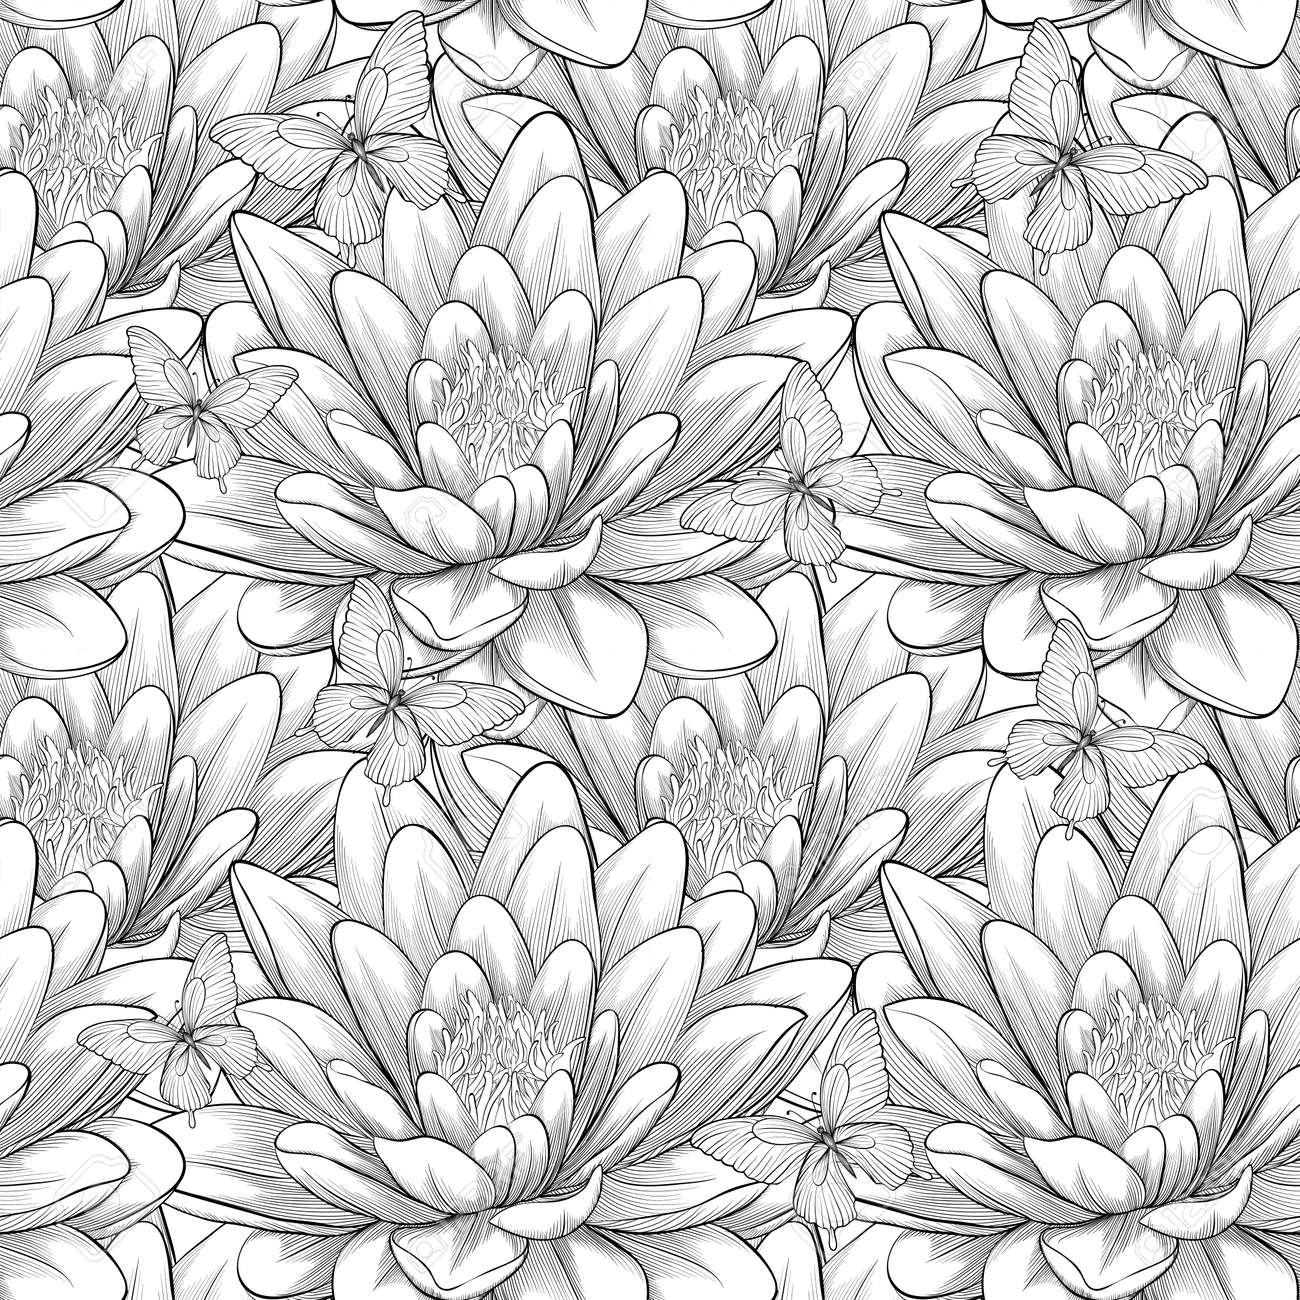 8382 Lotus Flower Drawing Stock Illustrations Cliparts And Royalty